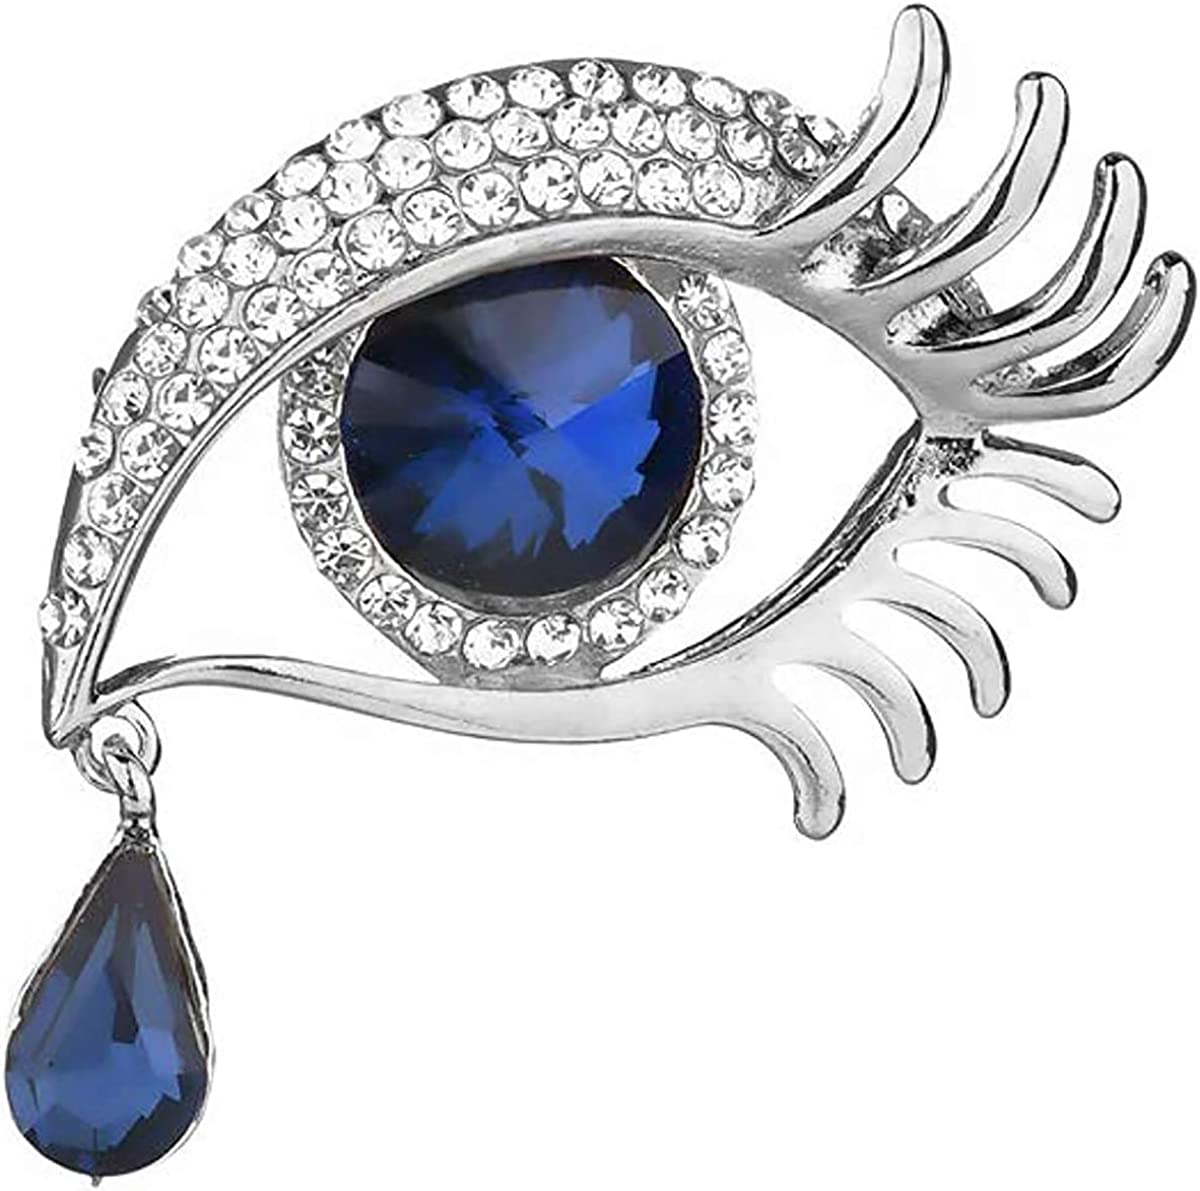 Limited time sale Fashion Royal Blue Tear of Angel Brooch Ranking TOP10 S Covered Rhinestone Pin